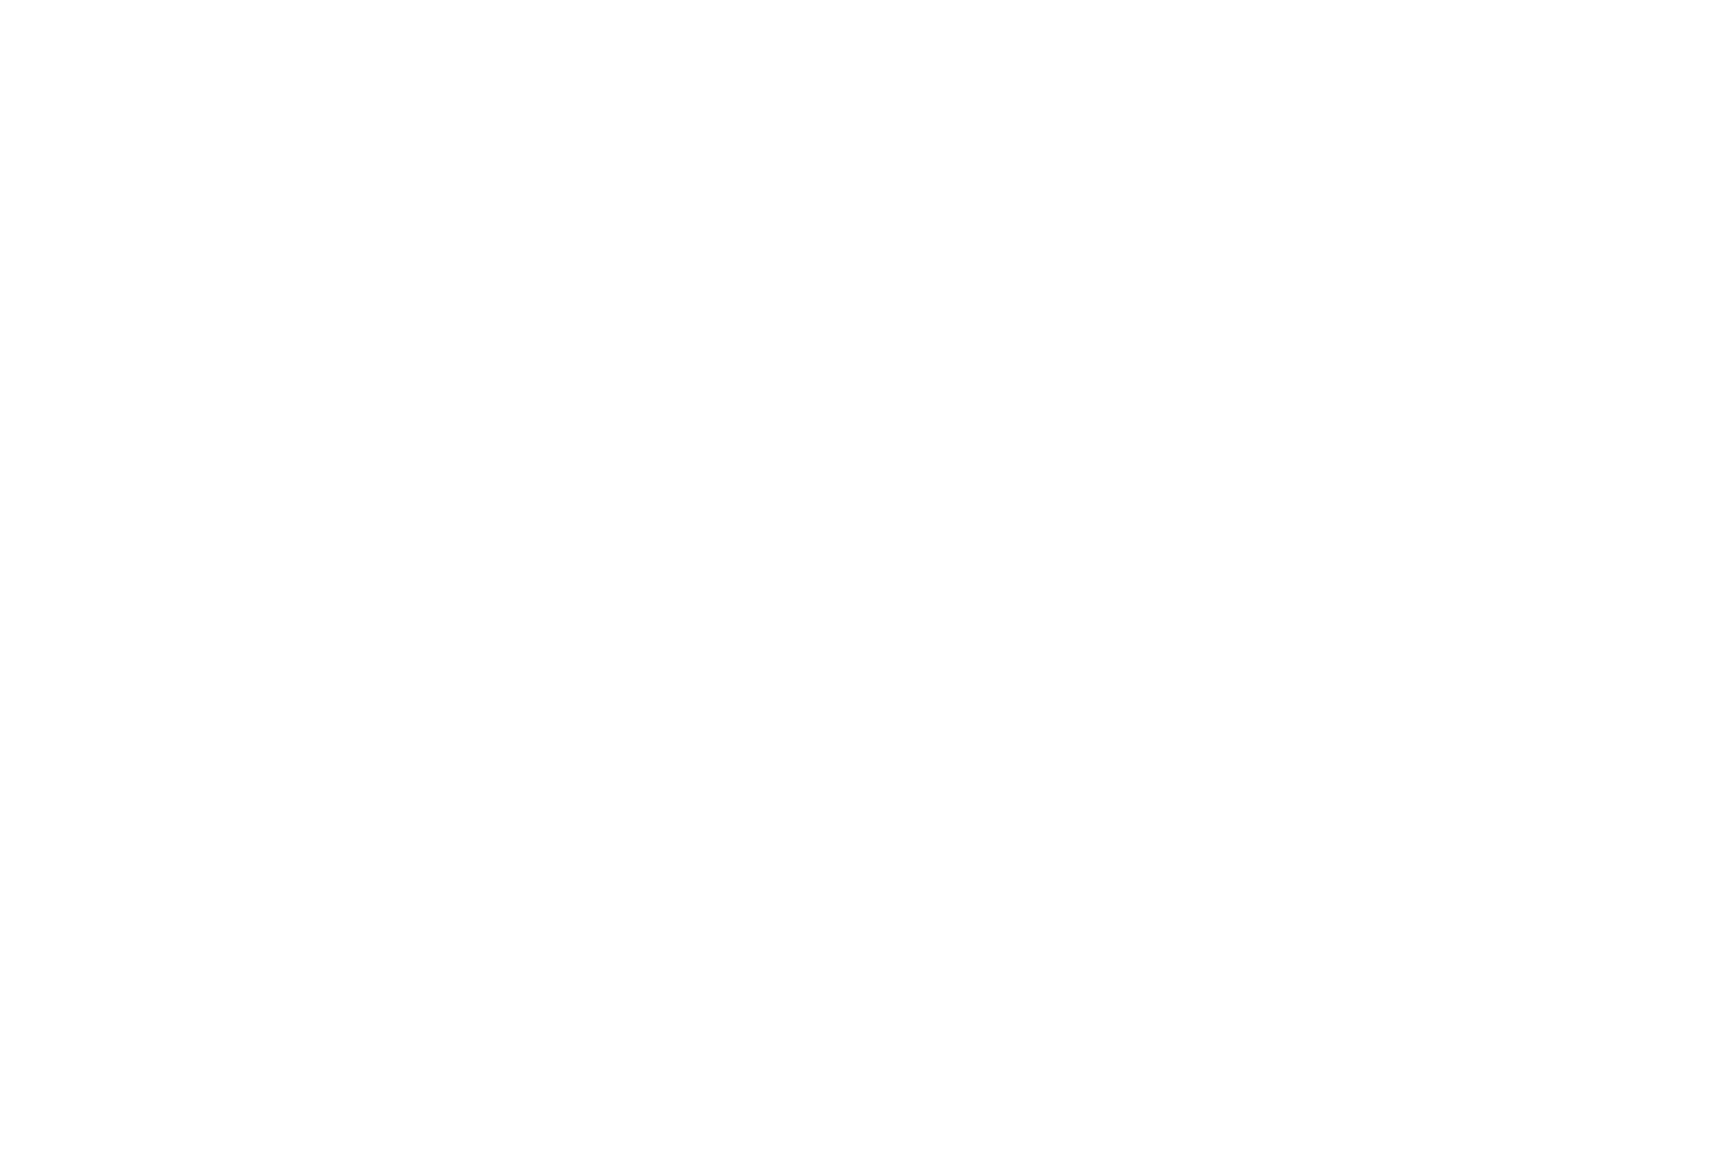 OFFICIAL SELECTION - Emerging Filmmakers Night - 2018.png